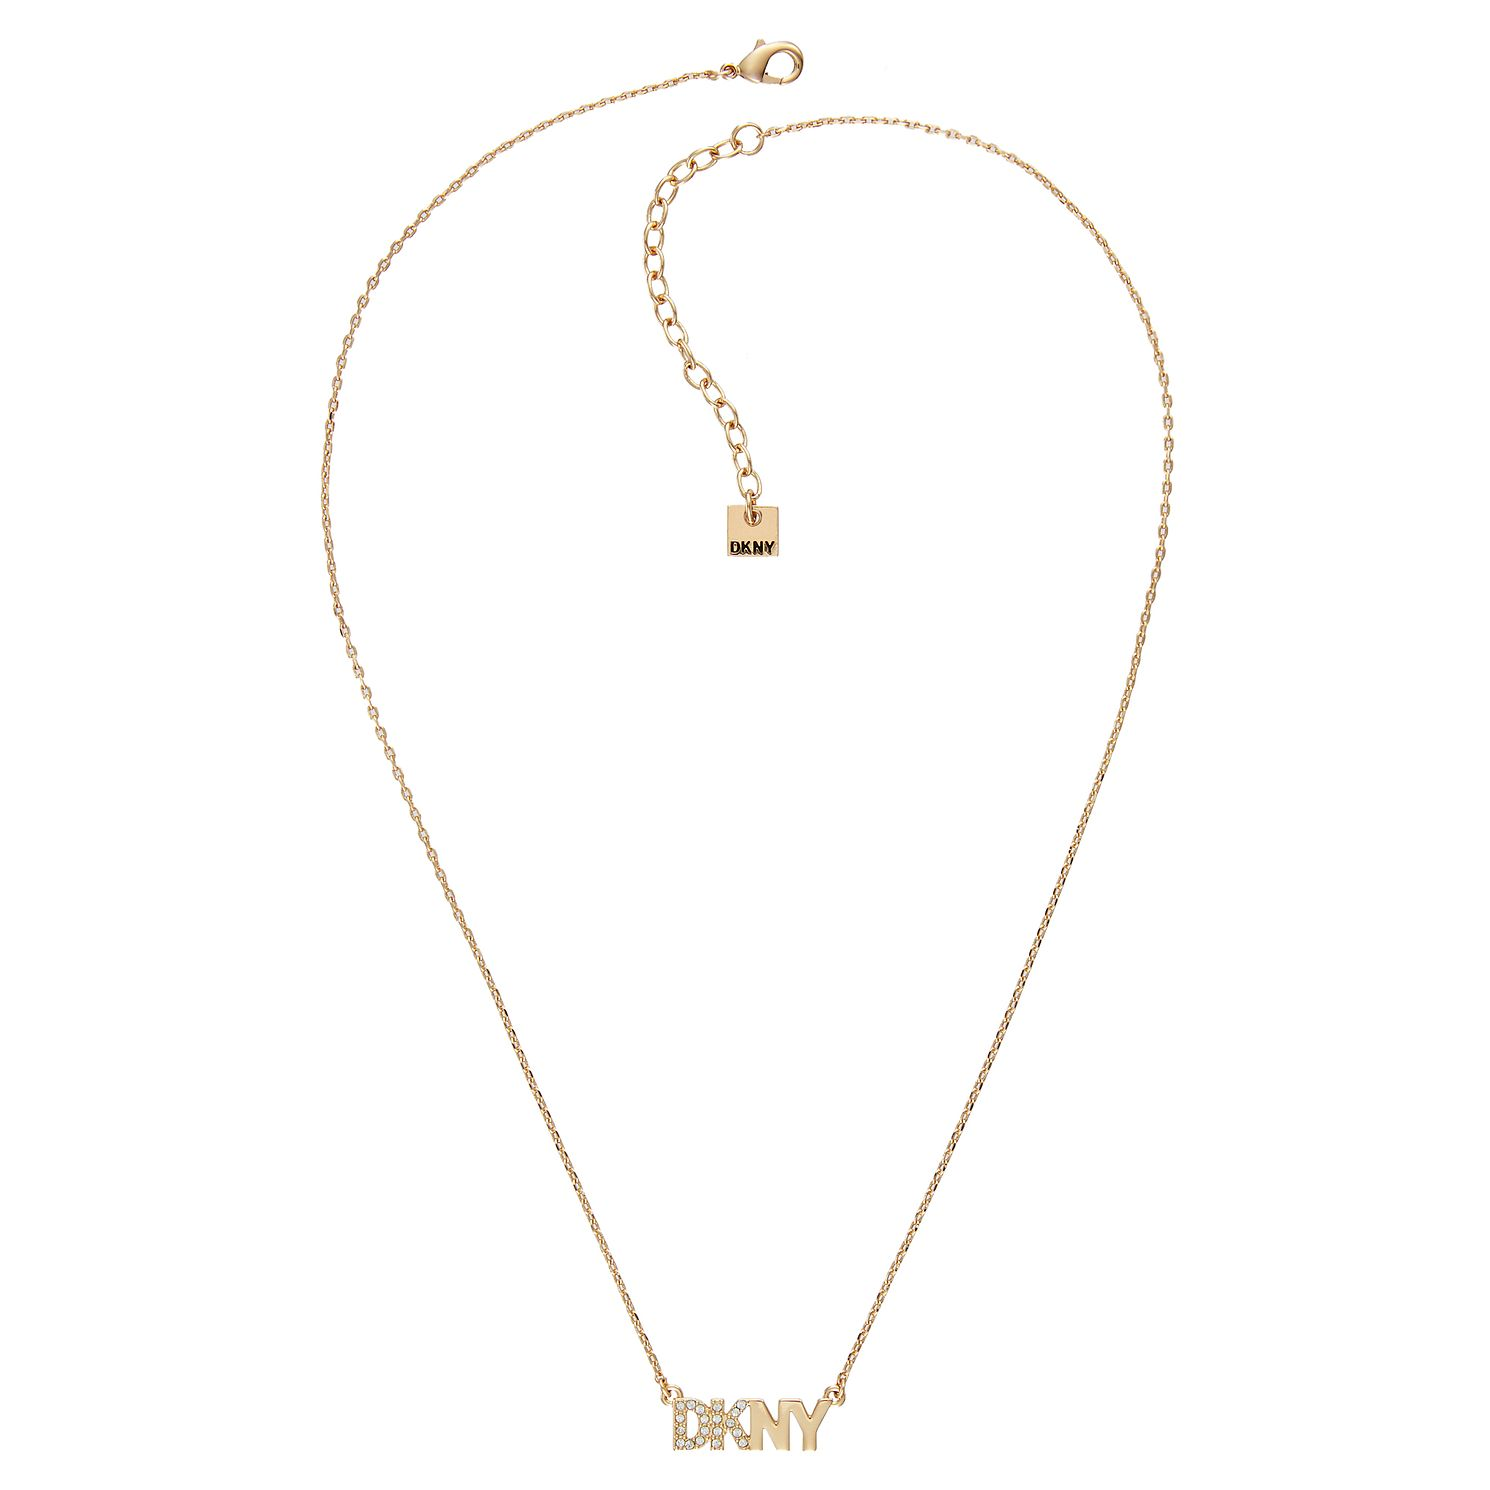 DKNY Pave Logo Yellow Gold Plated Swarovski Crystal Necklace - Product number 5888913